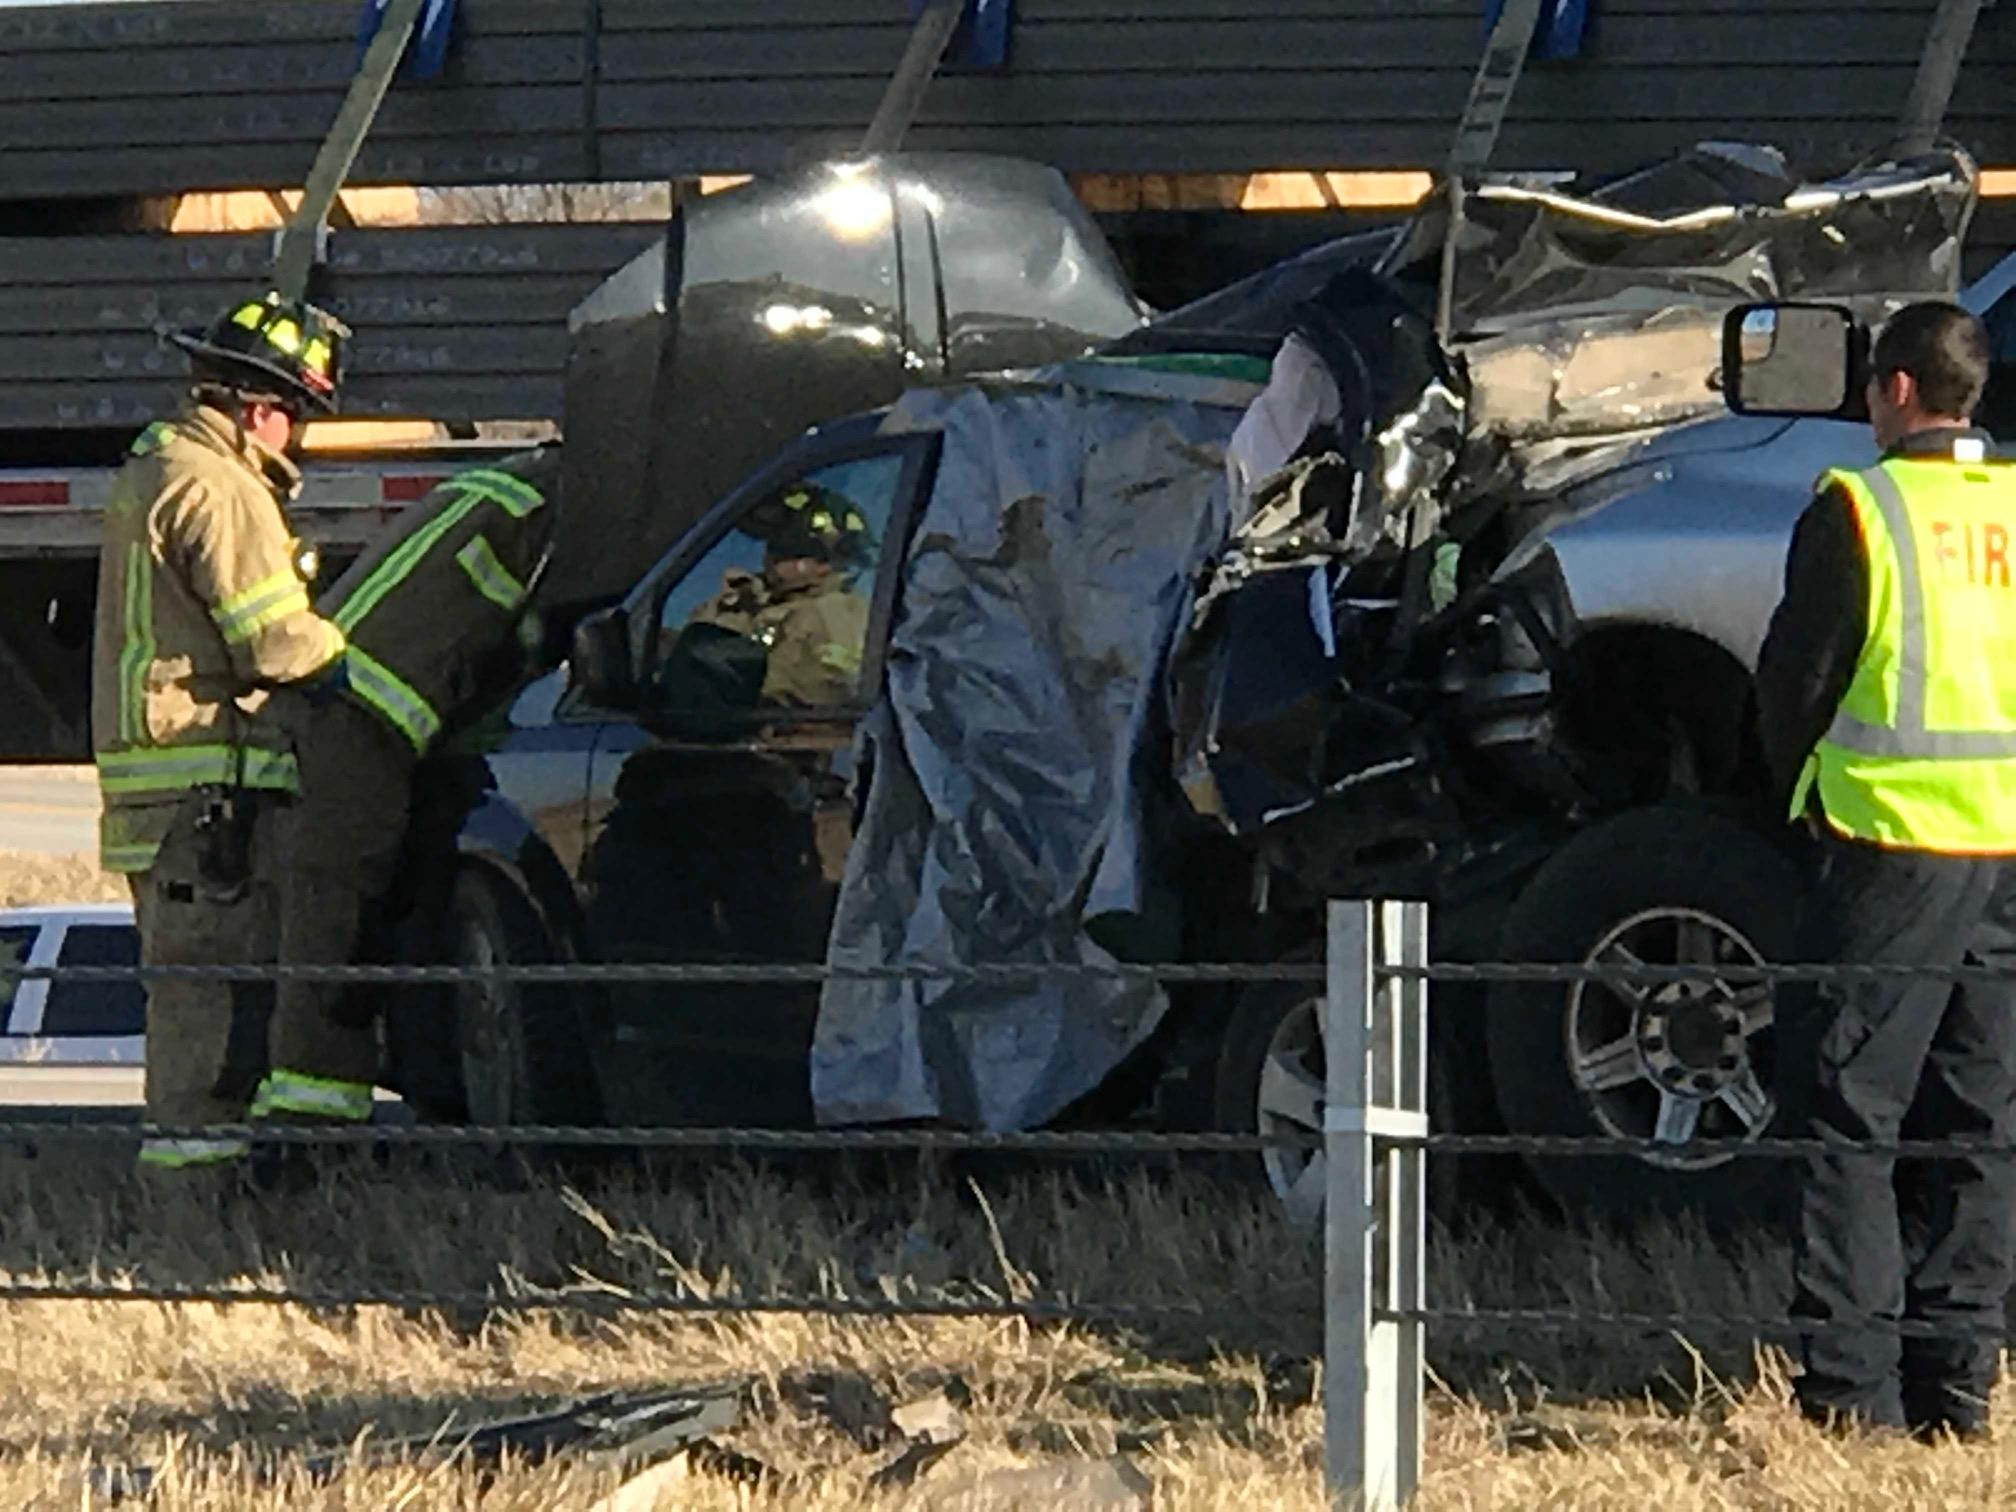 At least one person is dead after an accident involving four vehicles and an 18-wheeler on westbound I-20 in Abilene.<p></p>